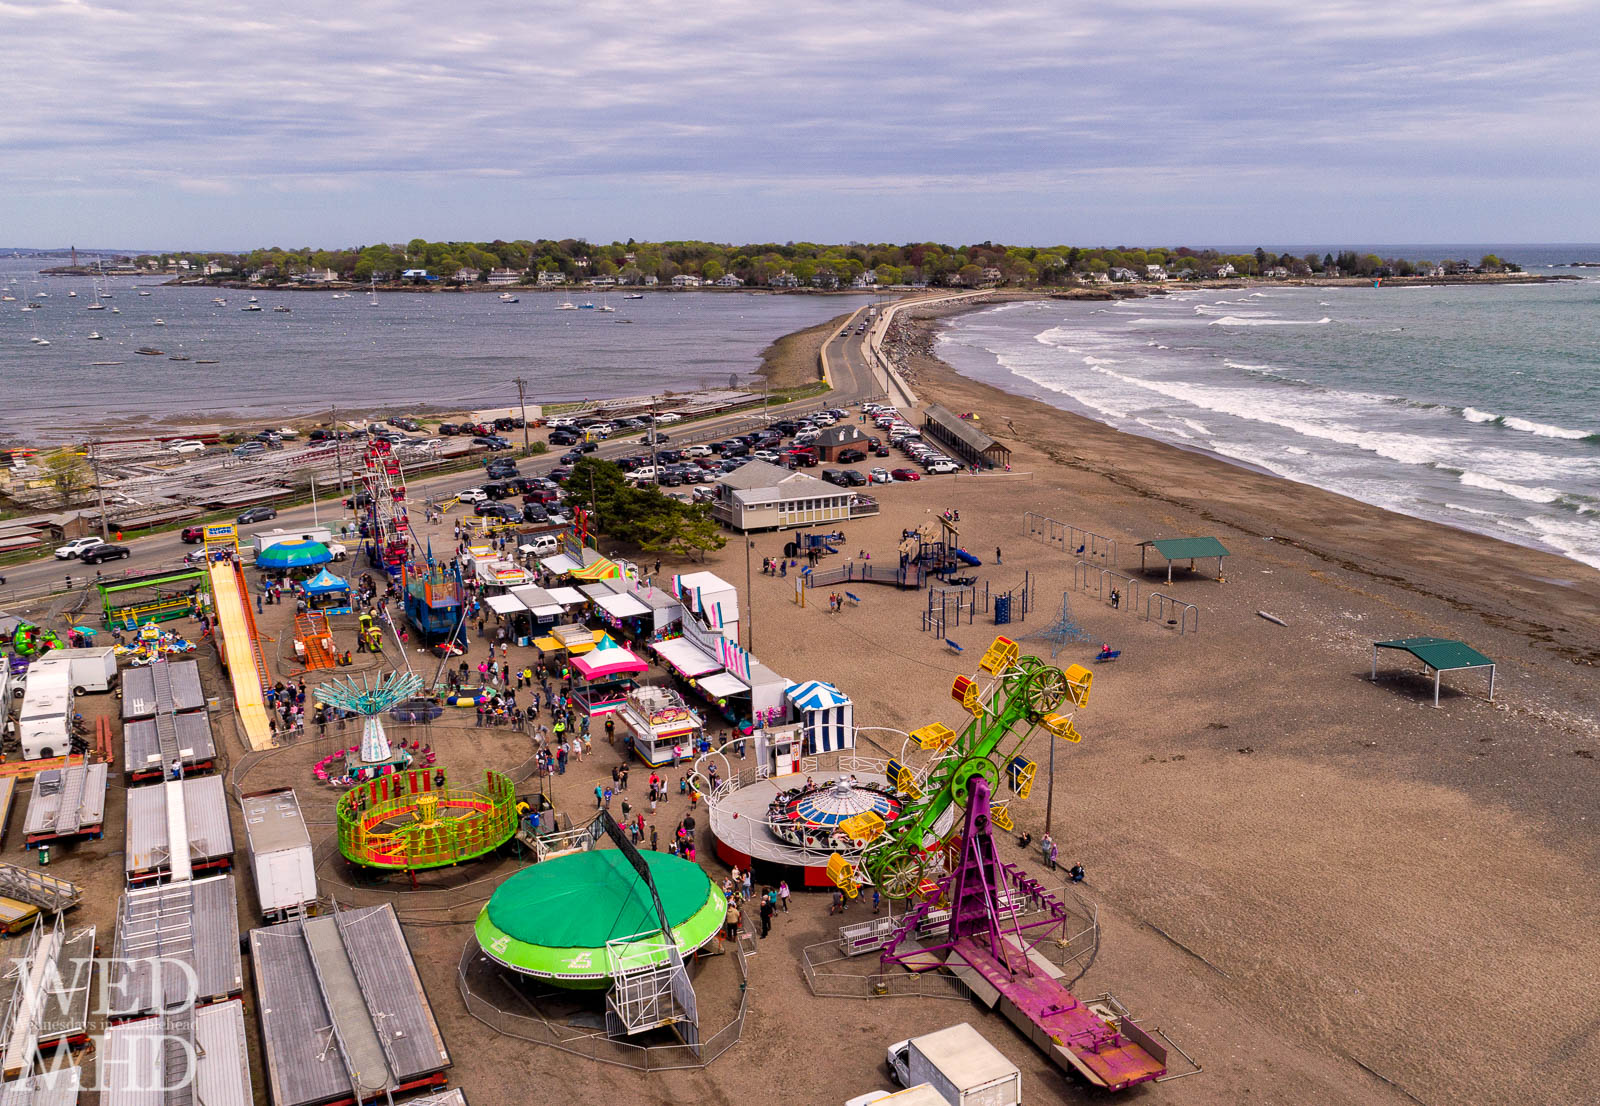 The annual Marblehead carnival takes place on the sandy lot of Devereux Beach. The carnival by the sea starts tonight and goes through the weekend.